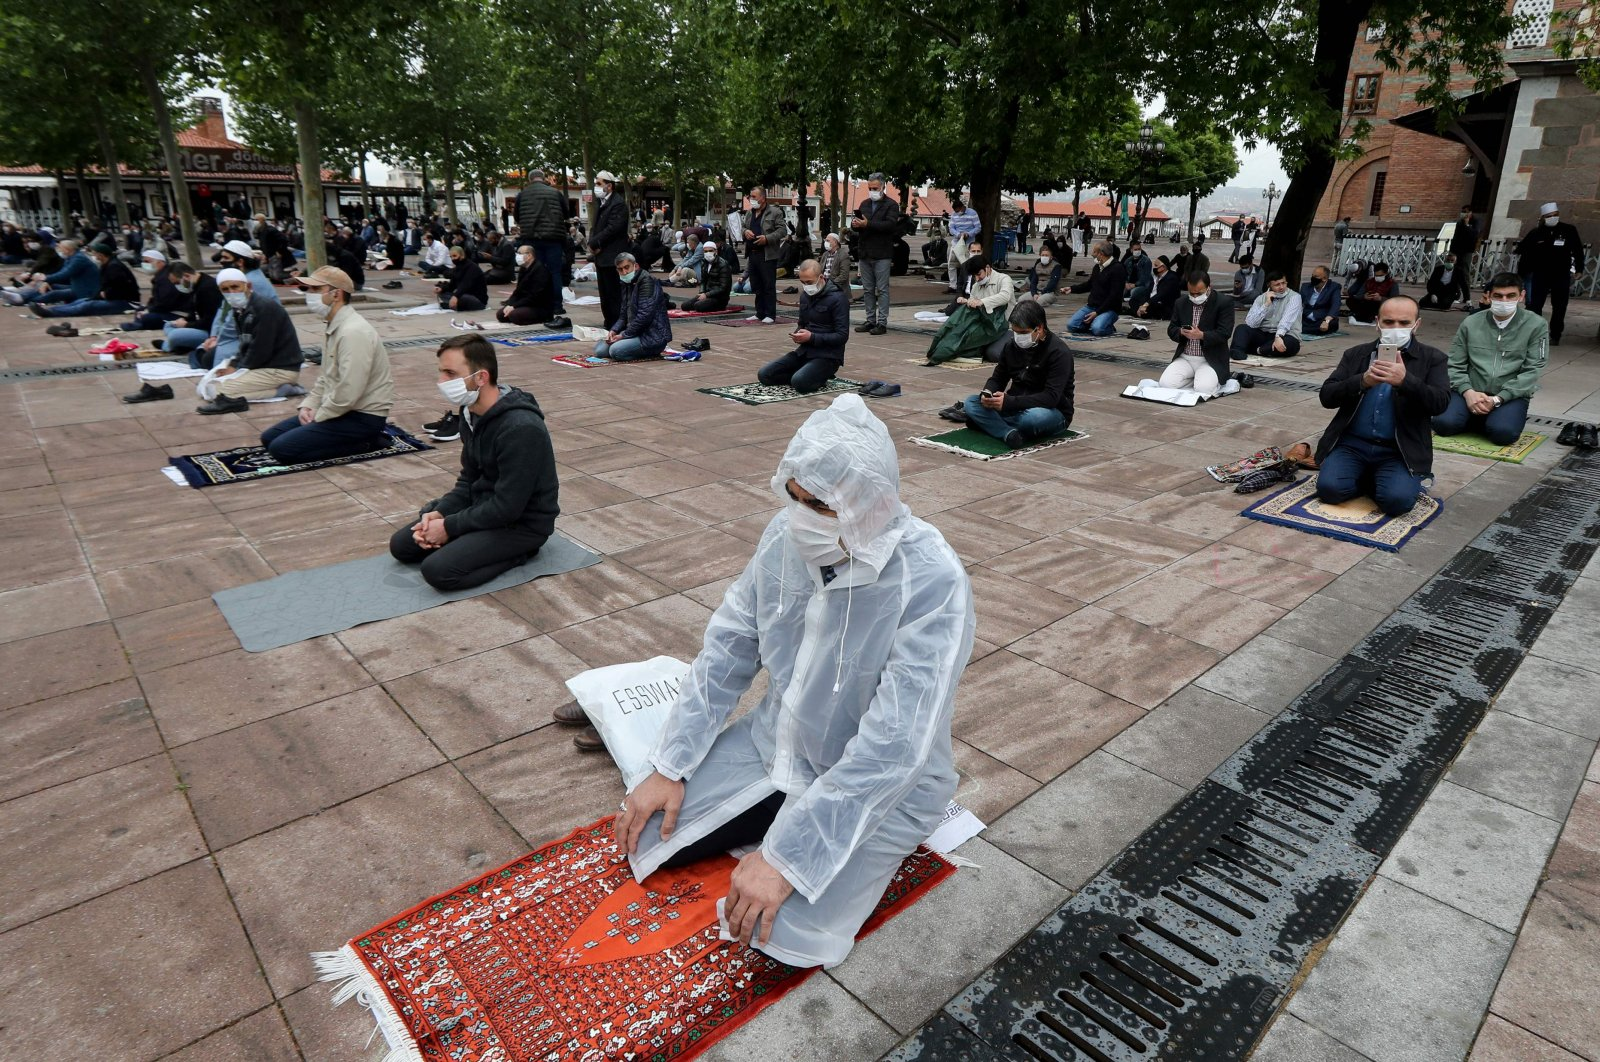 Worshippers wearing protective face masks maintain a required social distance during the Friday prayer outside the historical Hacı Bayram Mosque, in Ankara, Turkey, May 29, 2020. (AFP Photo)